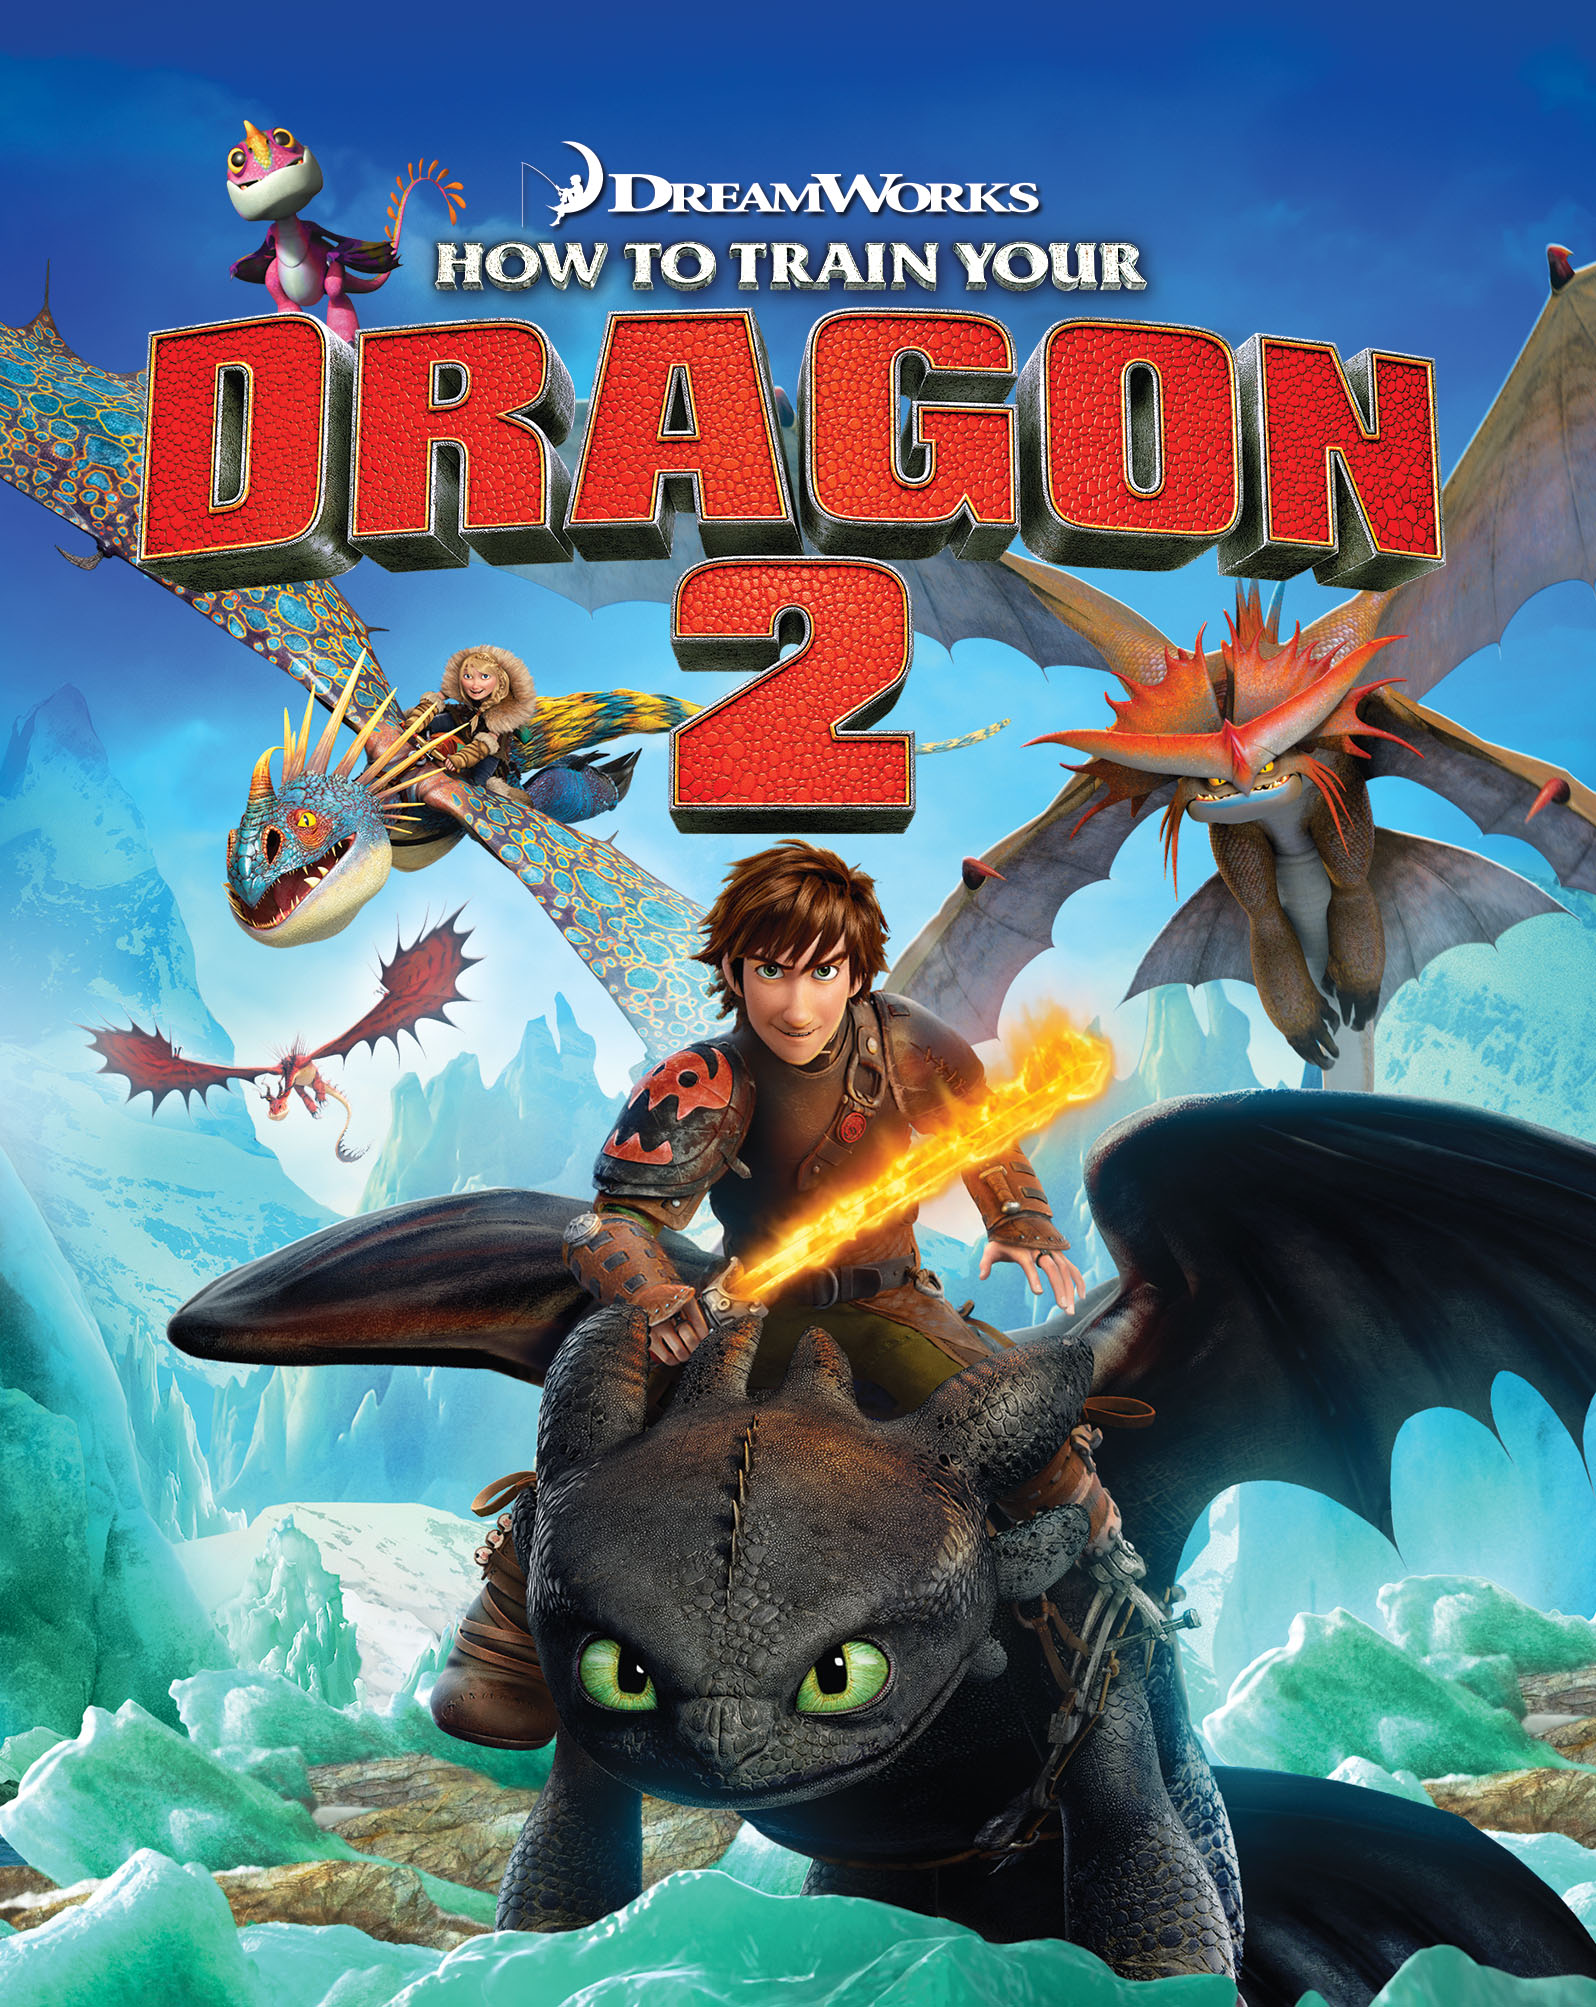 How to Train Your Dragon 2: A Movie Review | Making the Most Blog